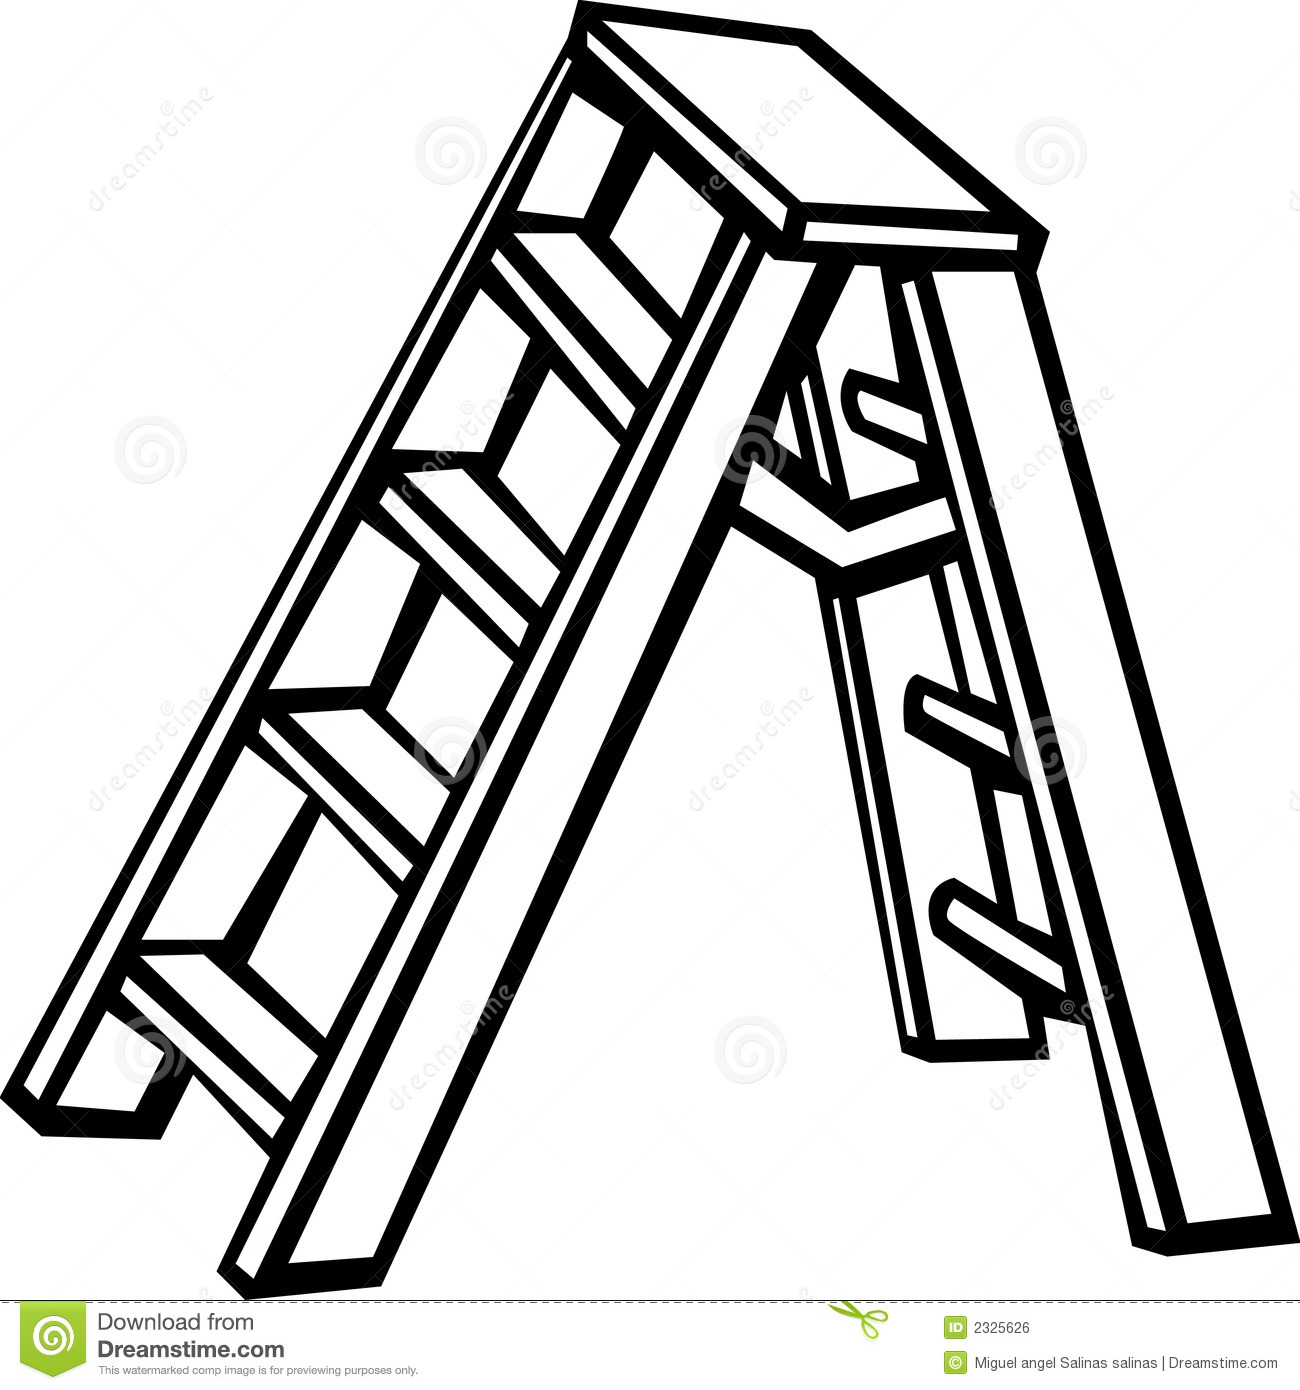 Step ladder clipart.